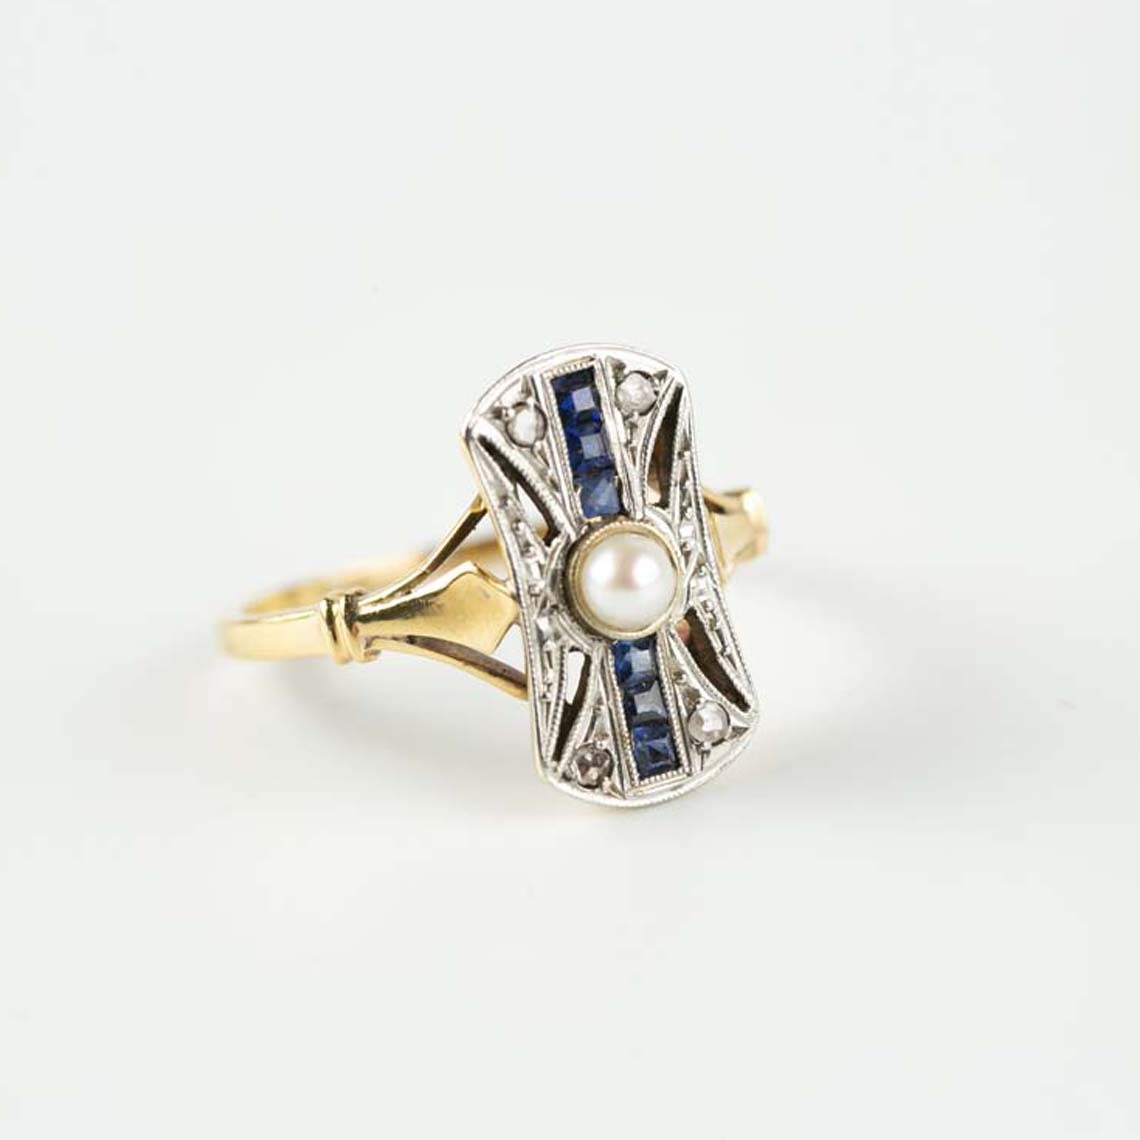 Vintage diamond, pearl and sapphire ring